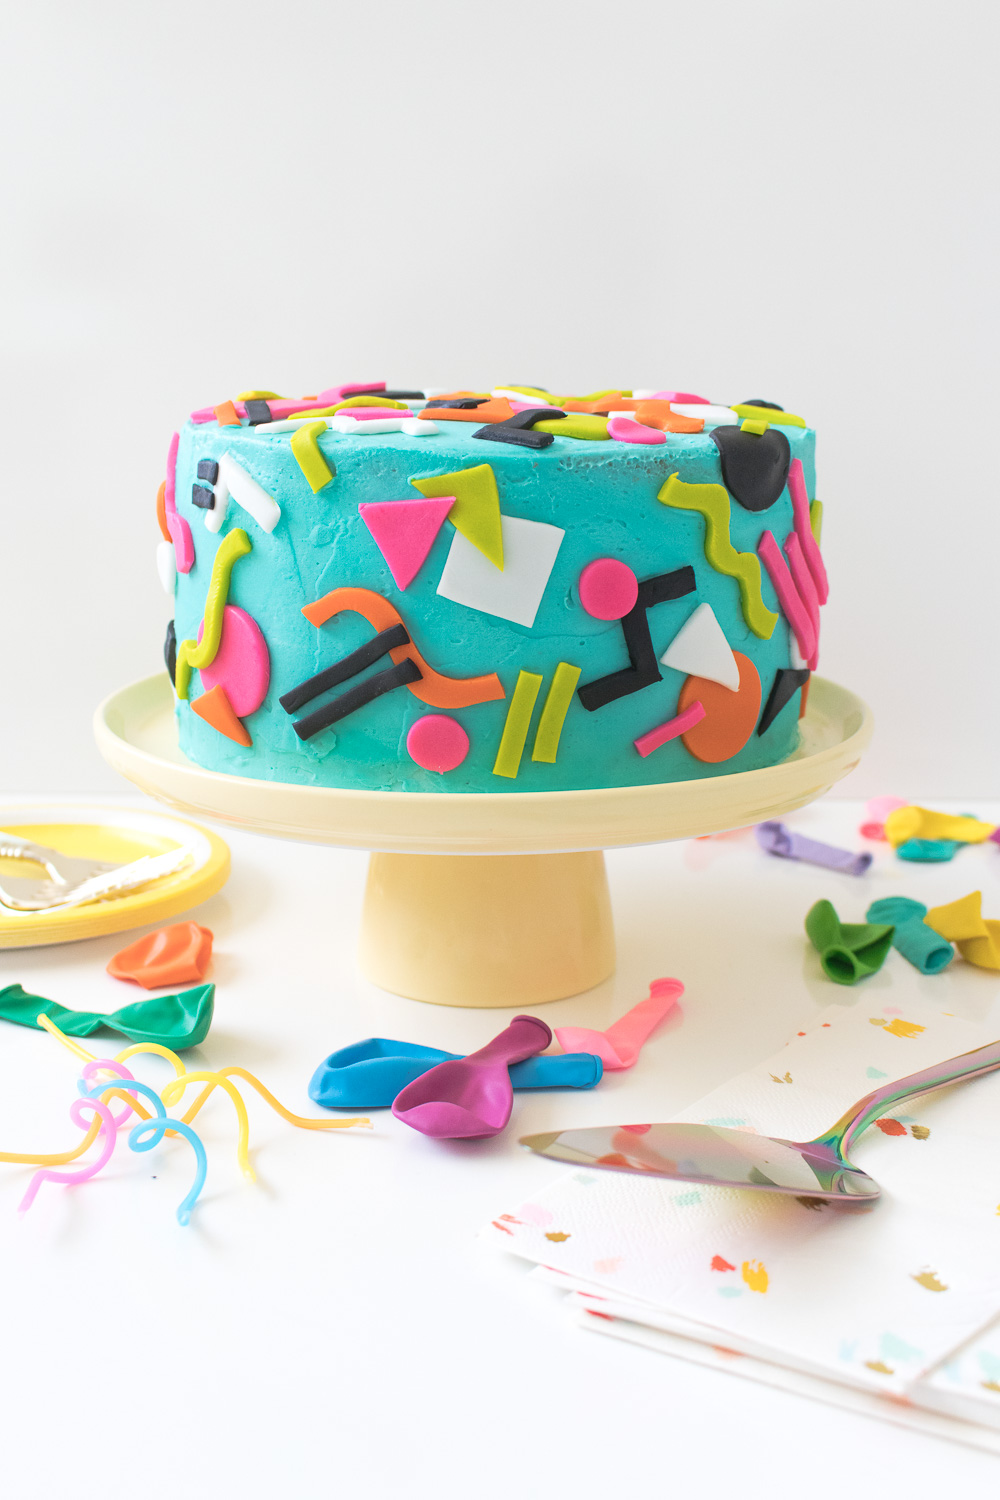 90s Throwback Layer Cake